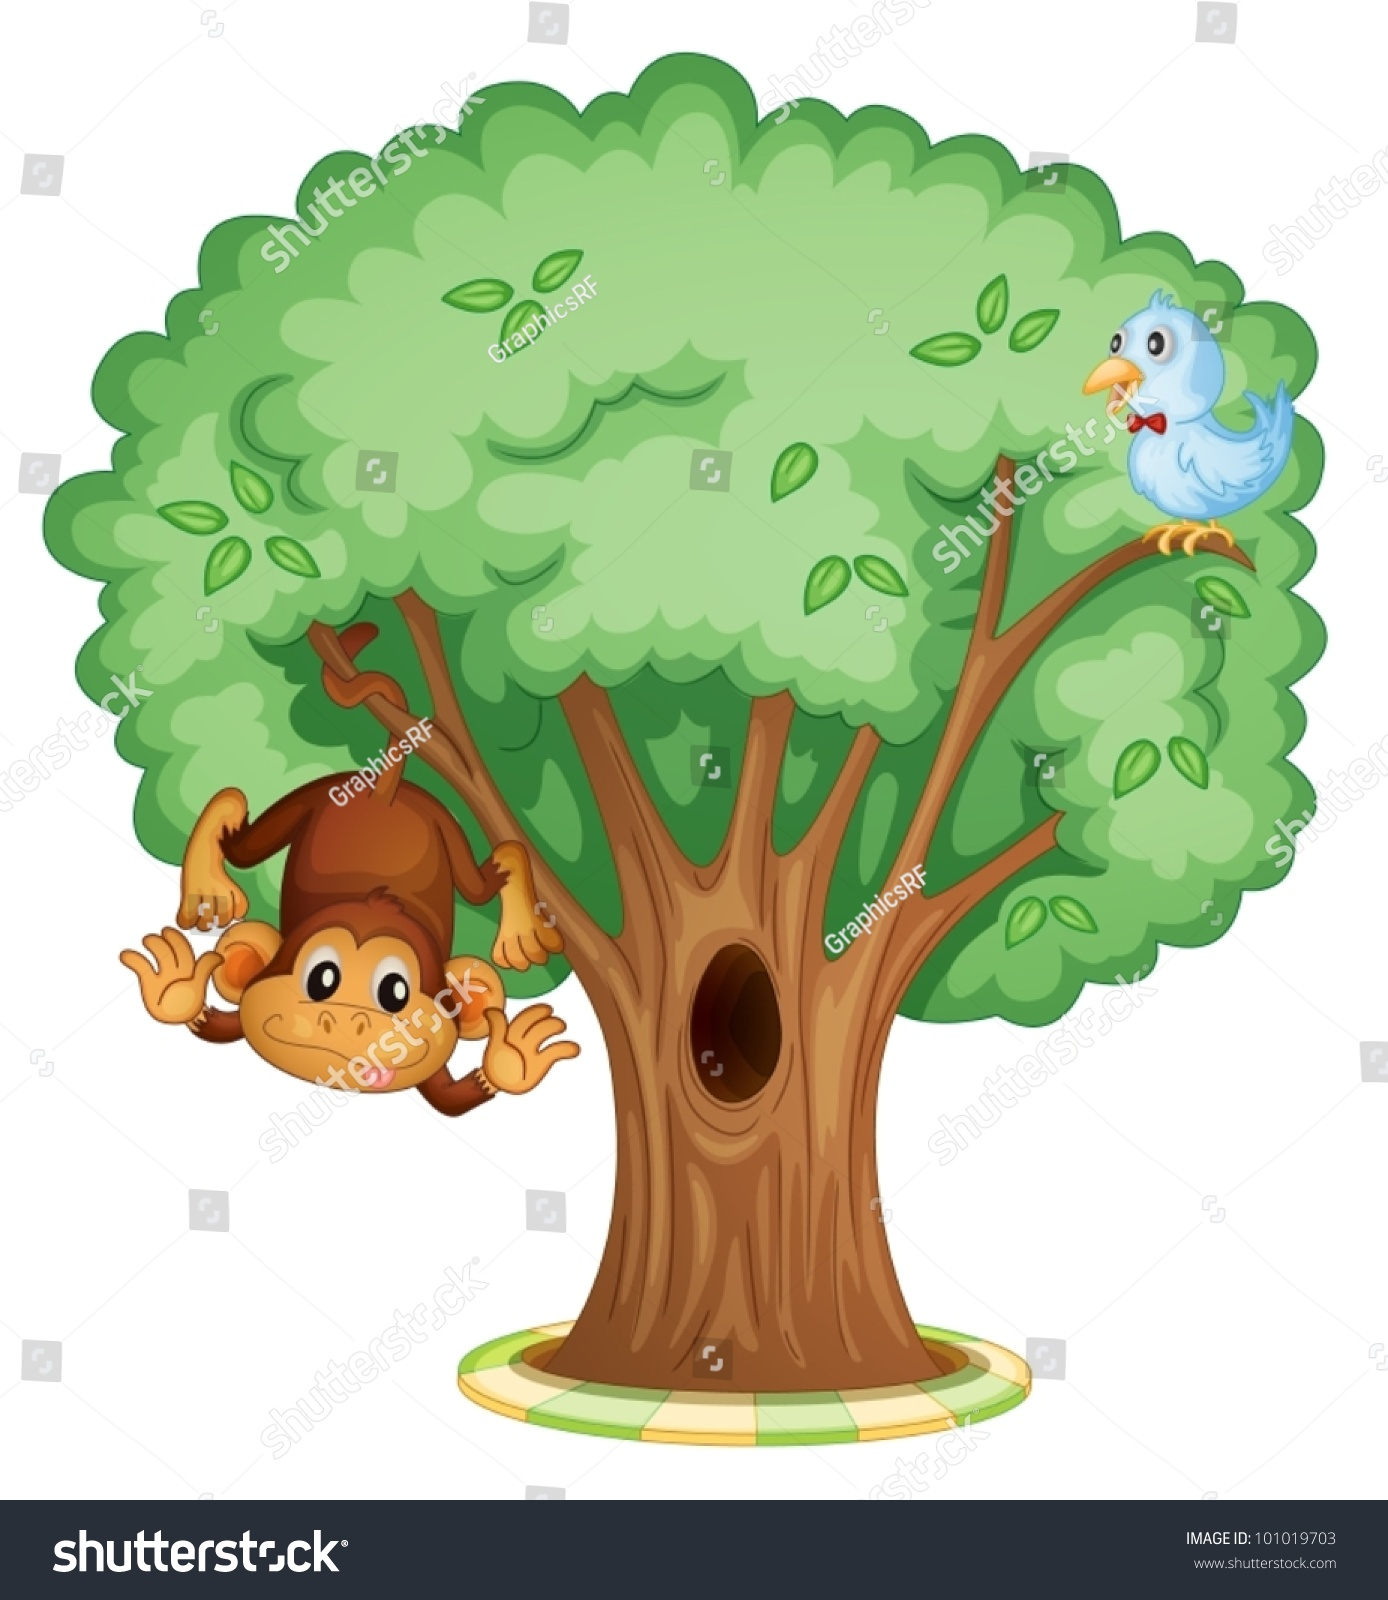 tree with birds clipart - photo #14